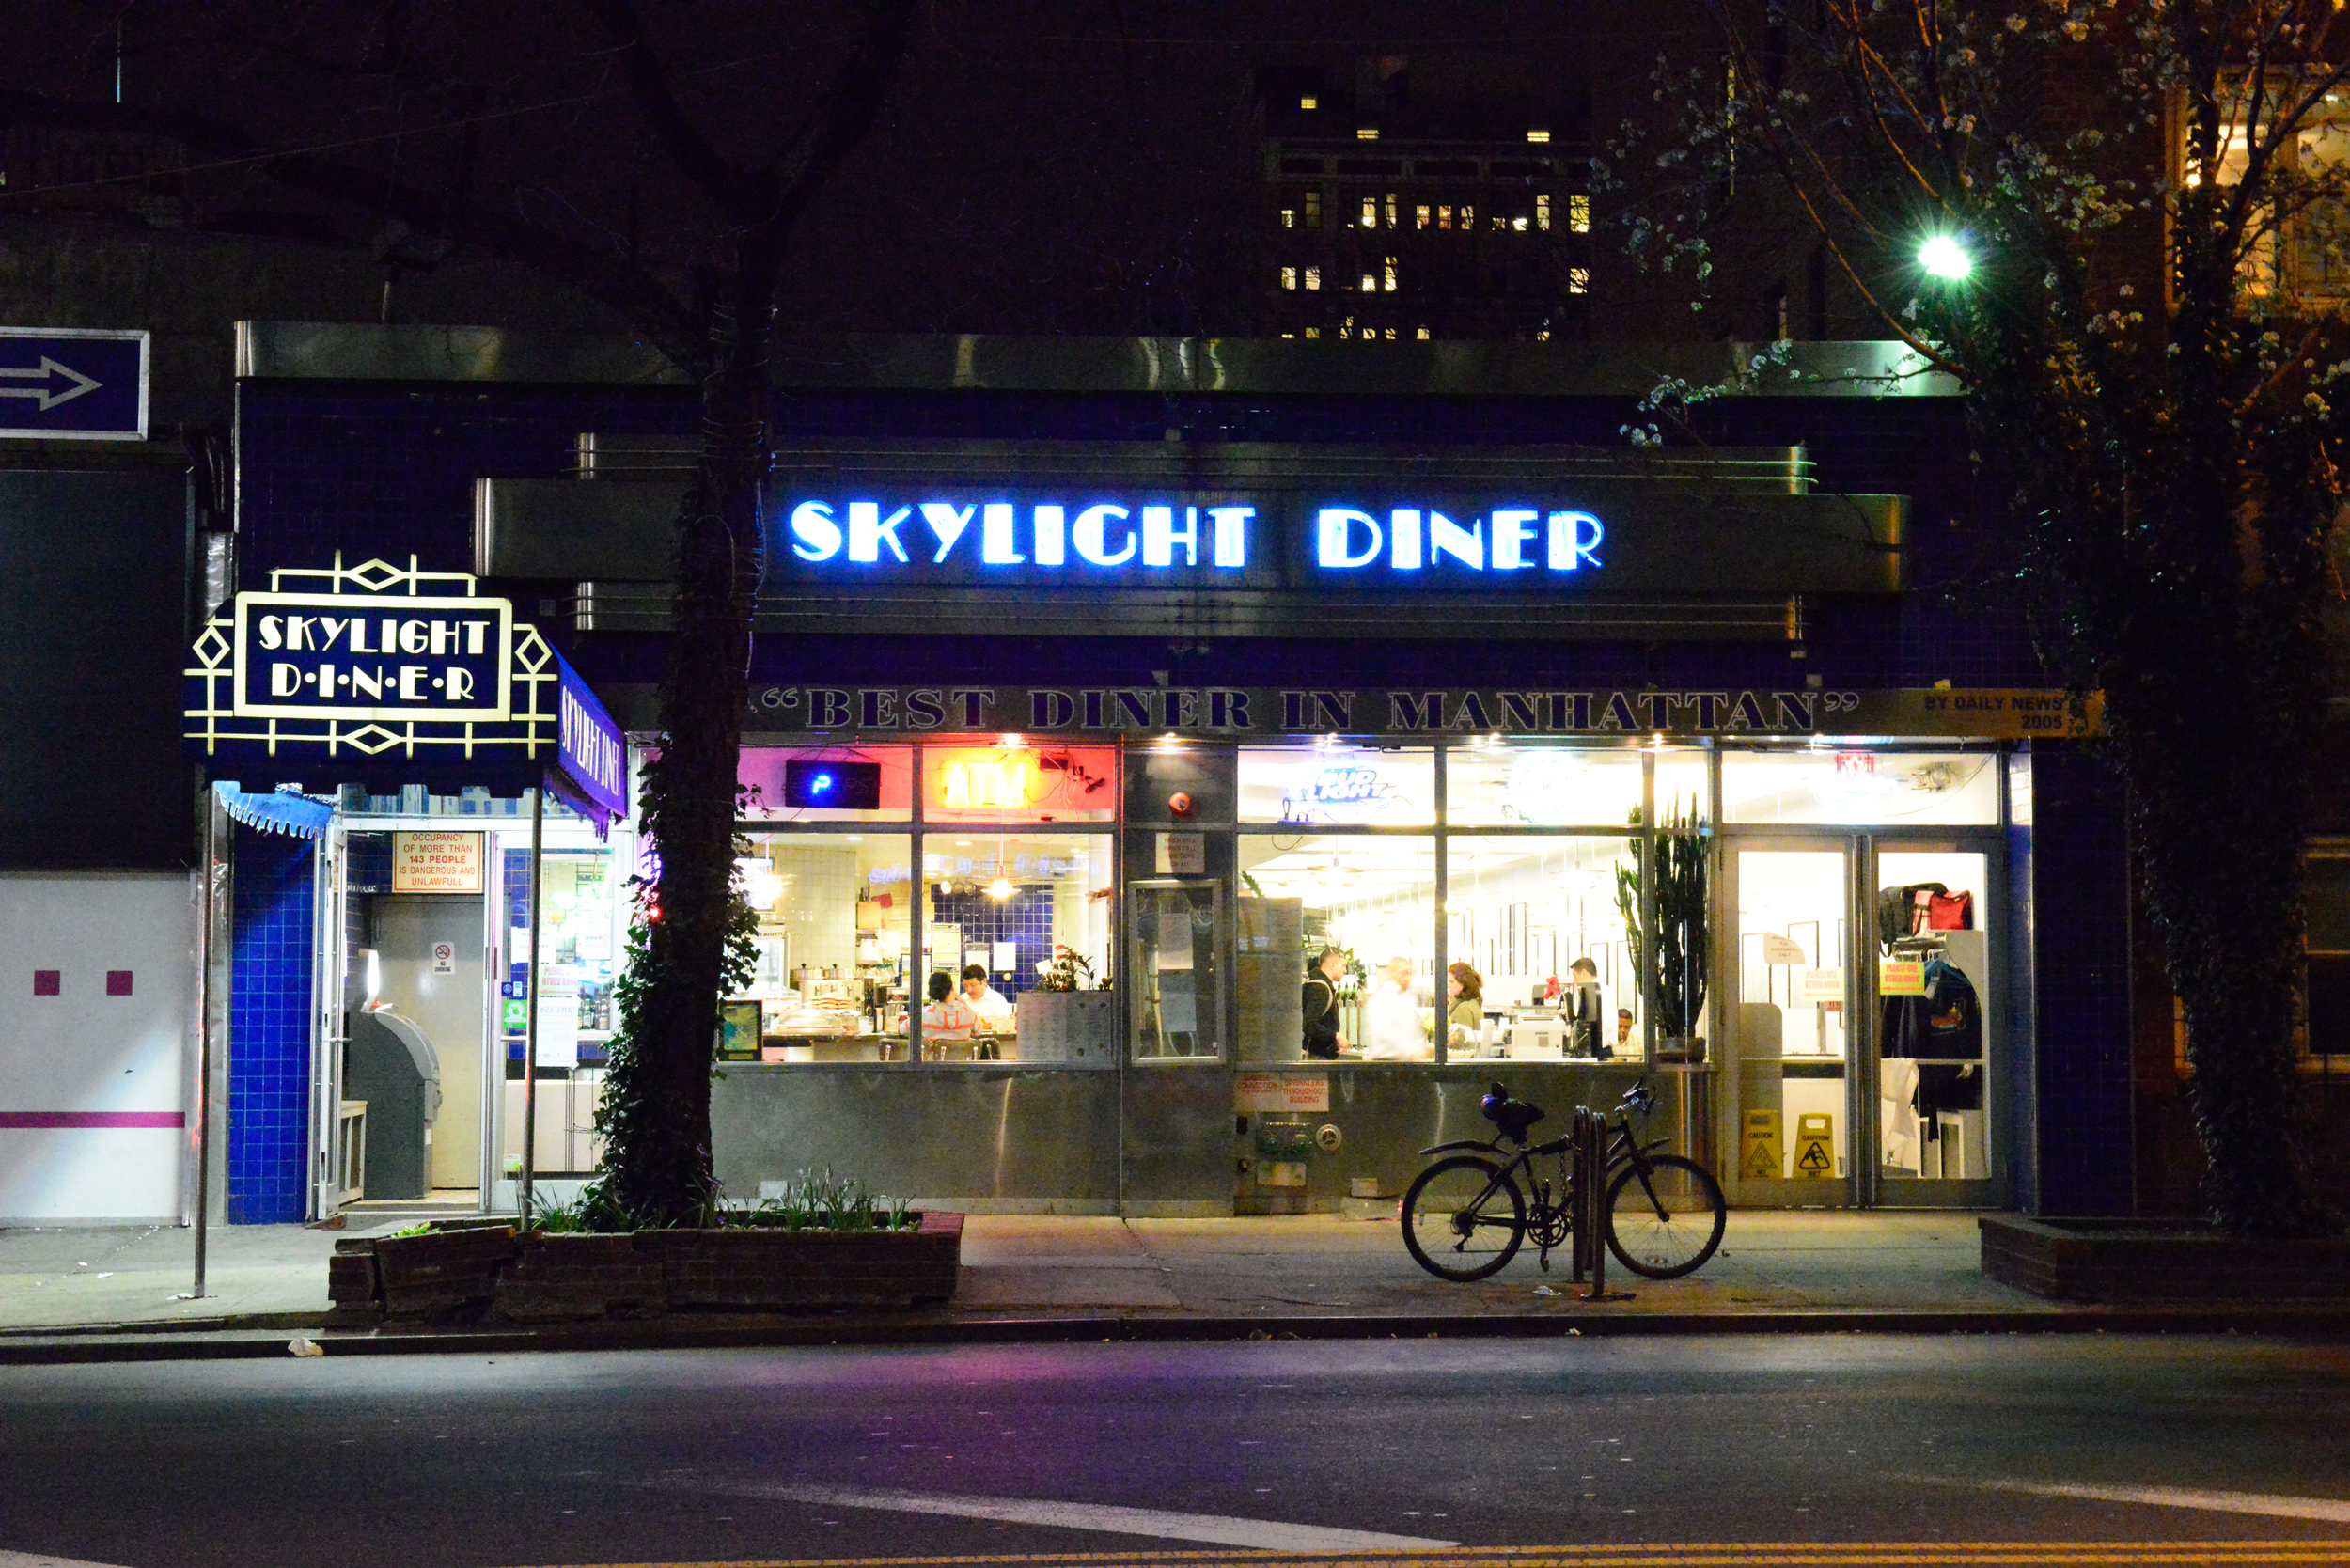 Skylight Diner on 34th